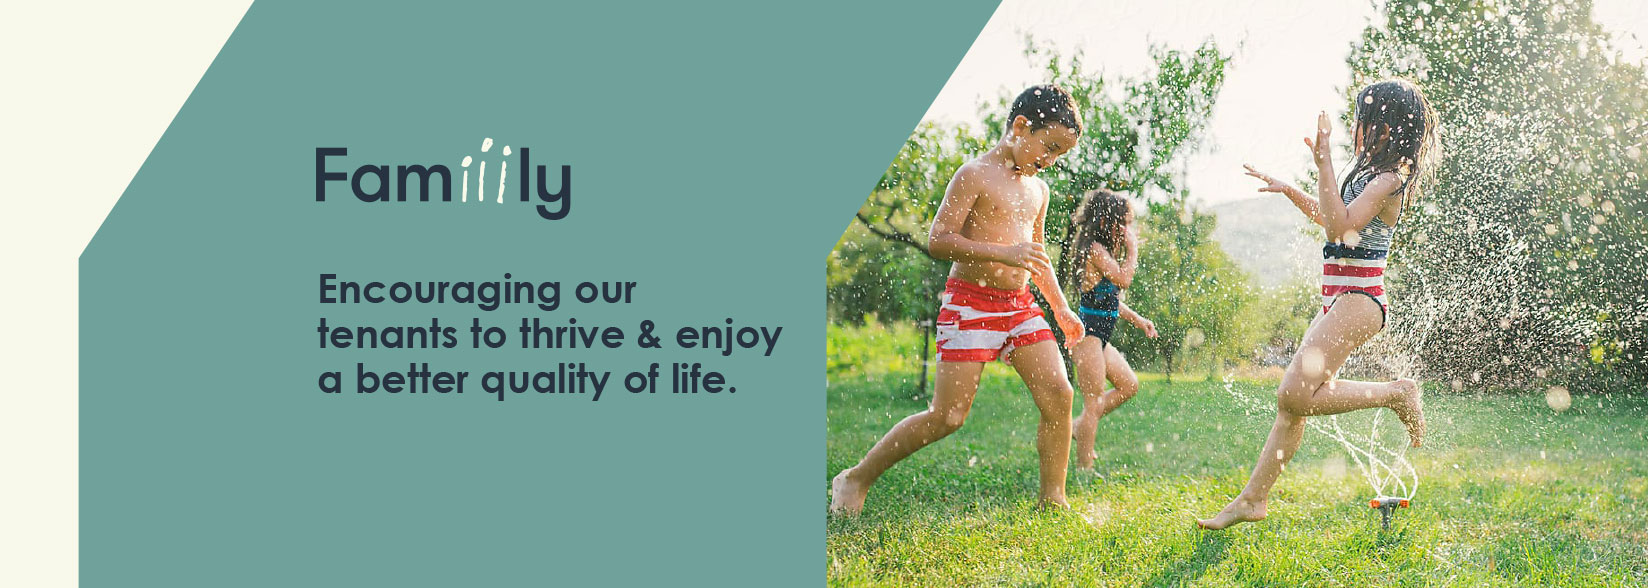 Family: Encouraging our tenants to thrive & enjoy a better quality of life.